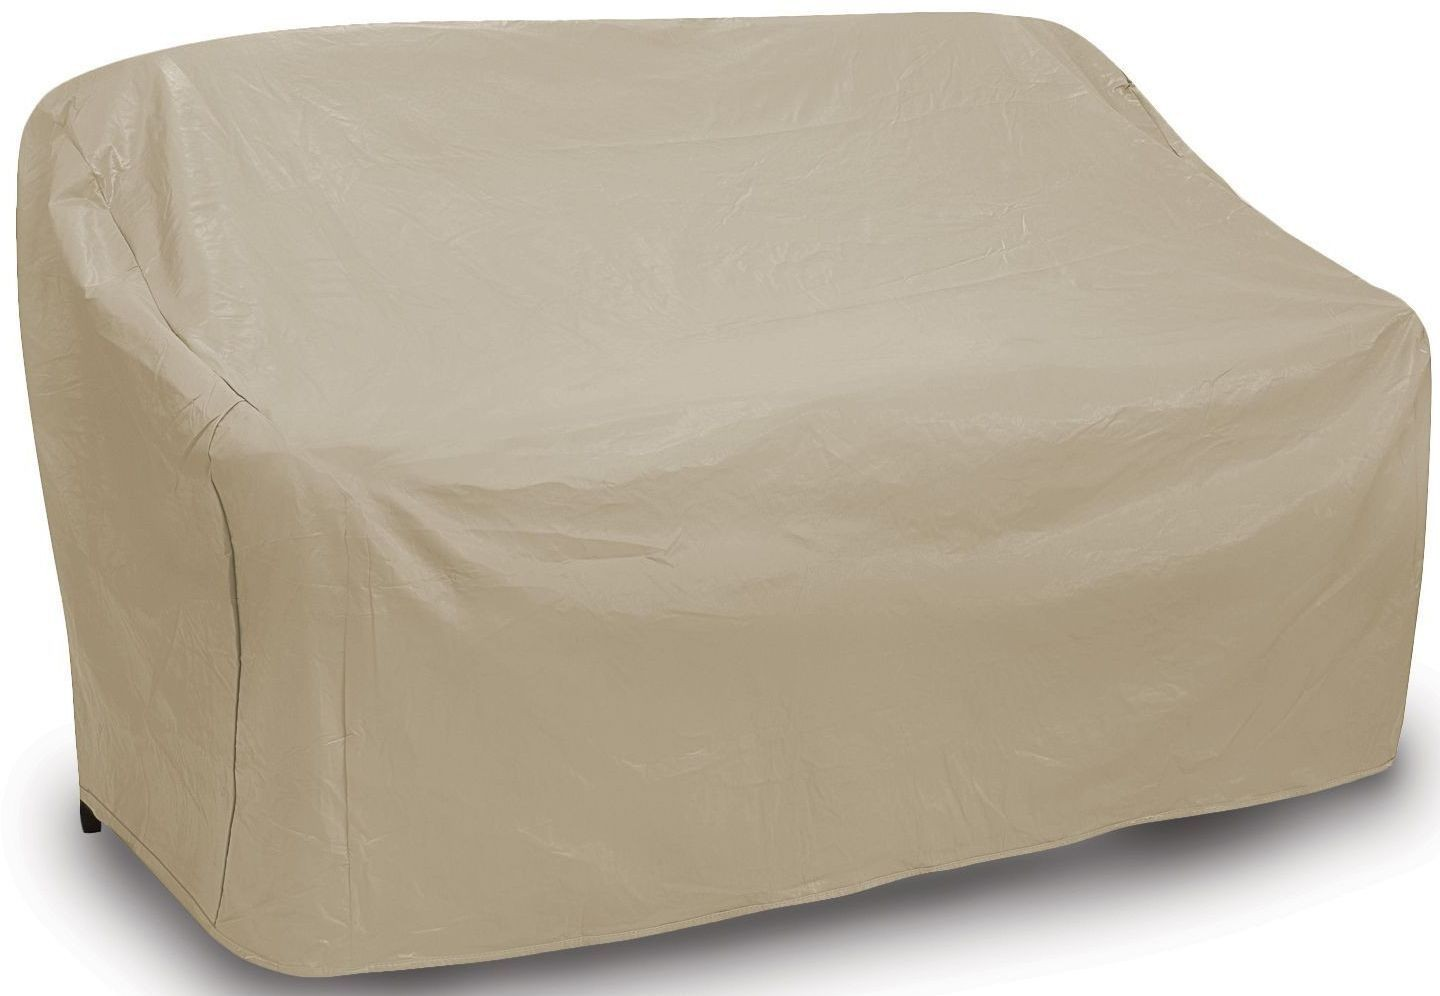 2 seater recliner sofa covers wooden designs with dimensions tan two seat wicker cover from pci outdoor